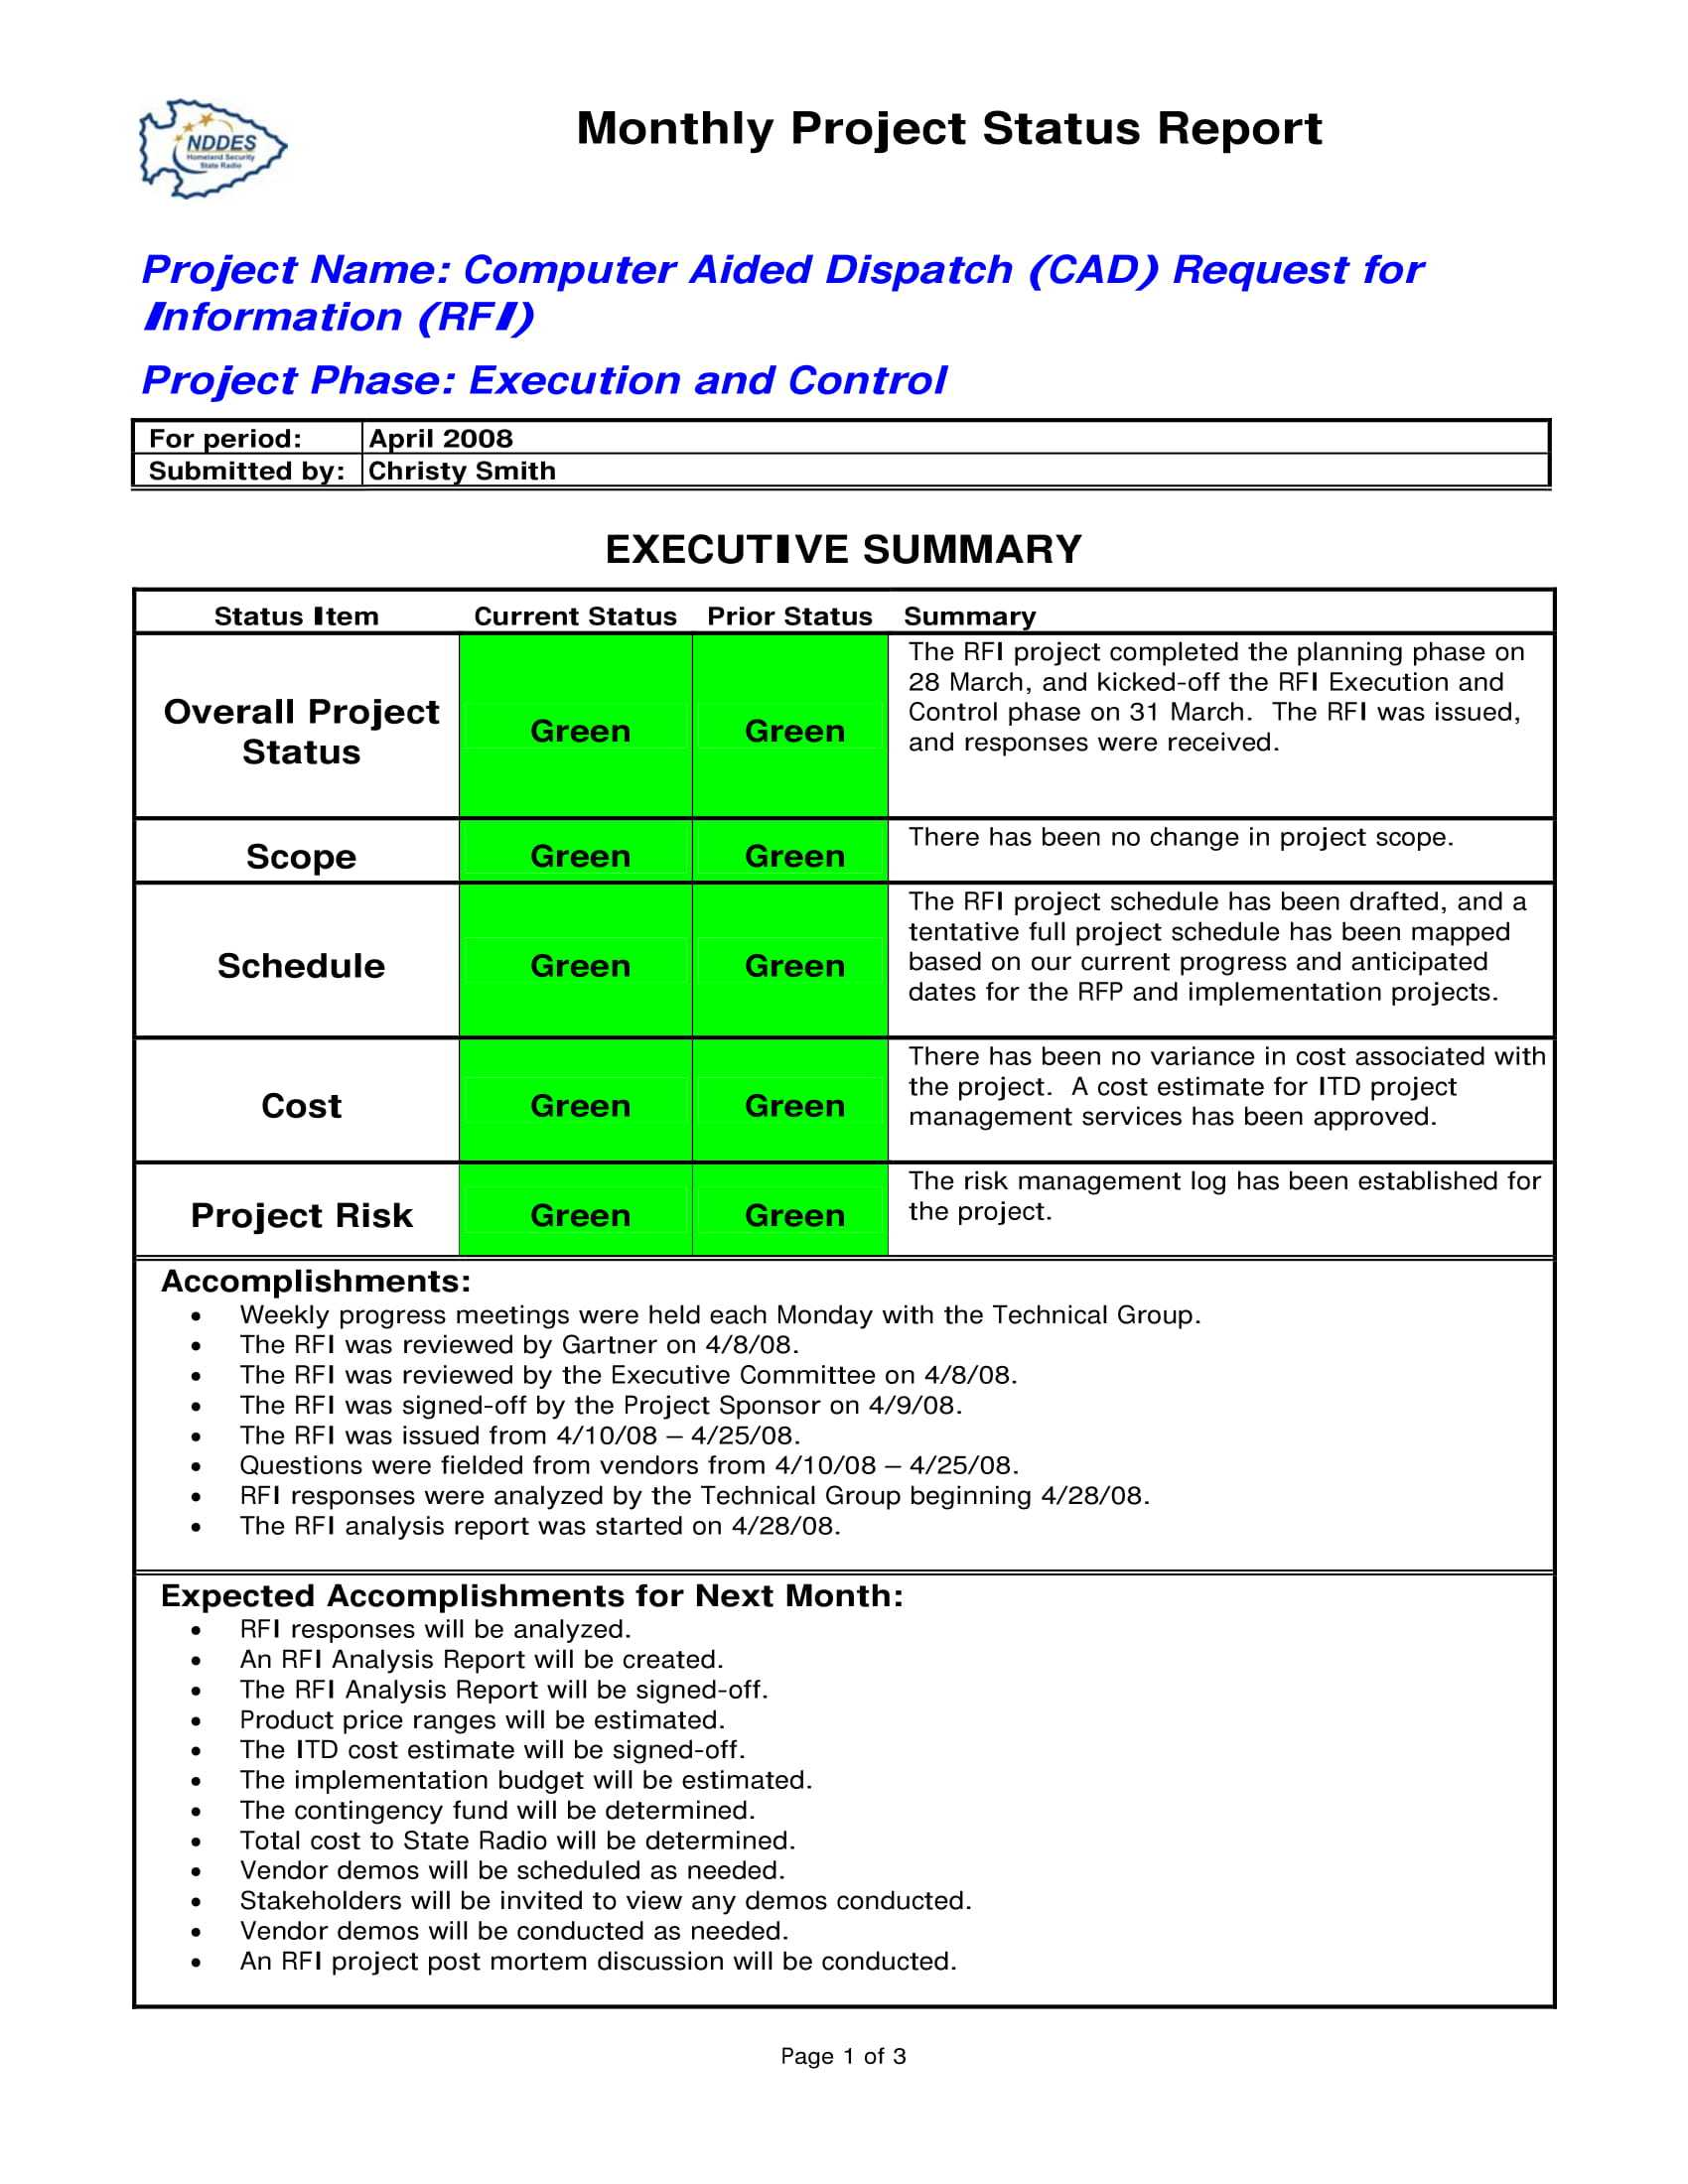 Project Monthly Status Report Template - Atlantaauctionco Inside Project Monthly Status Report Template